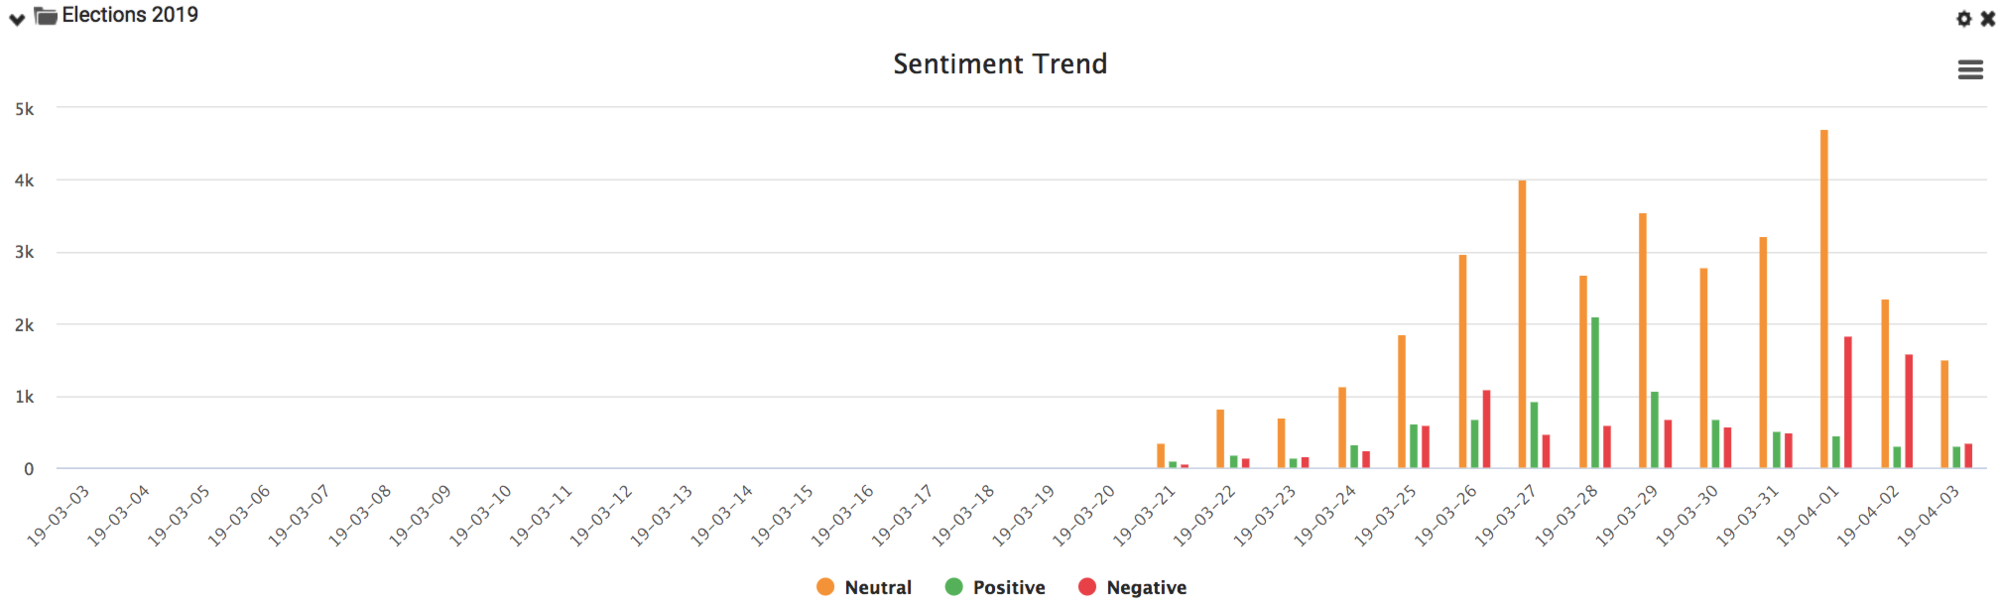 Sentiment Trend - Philippine Elections 2019